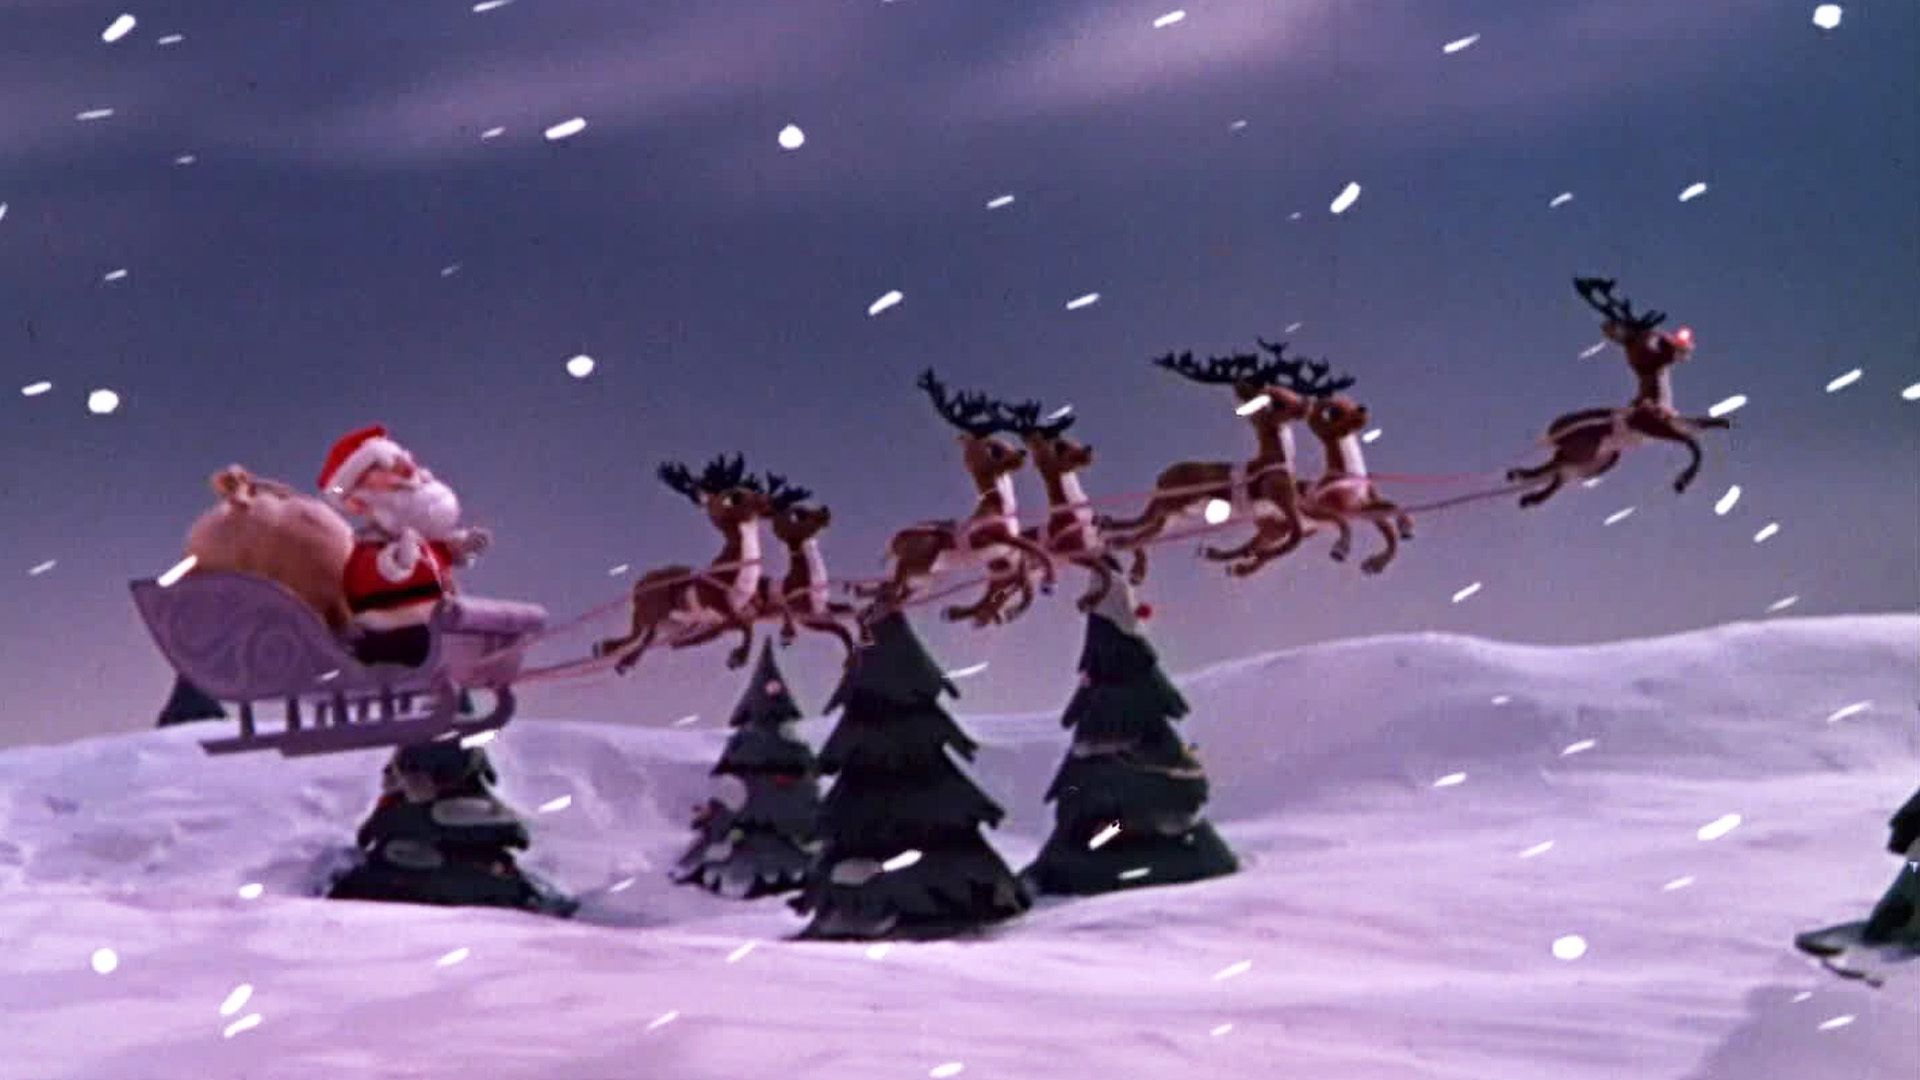 Rudolph The Red Nosed Reindeer Wallpapers